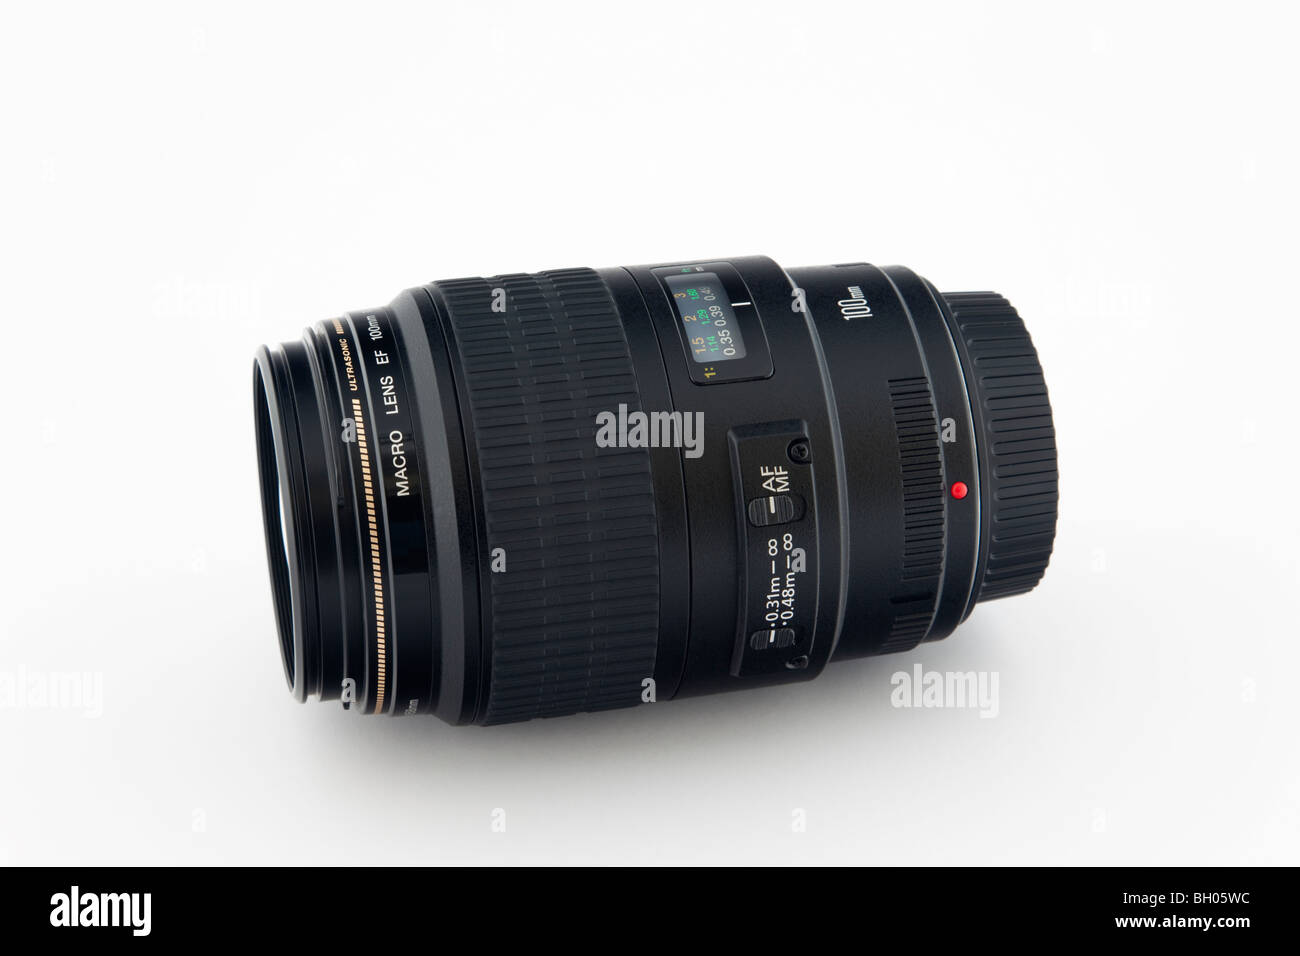 Unbranded Canon 100mm macro camera lens on white background - Stock Image